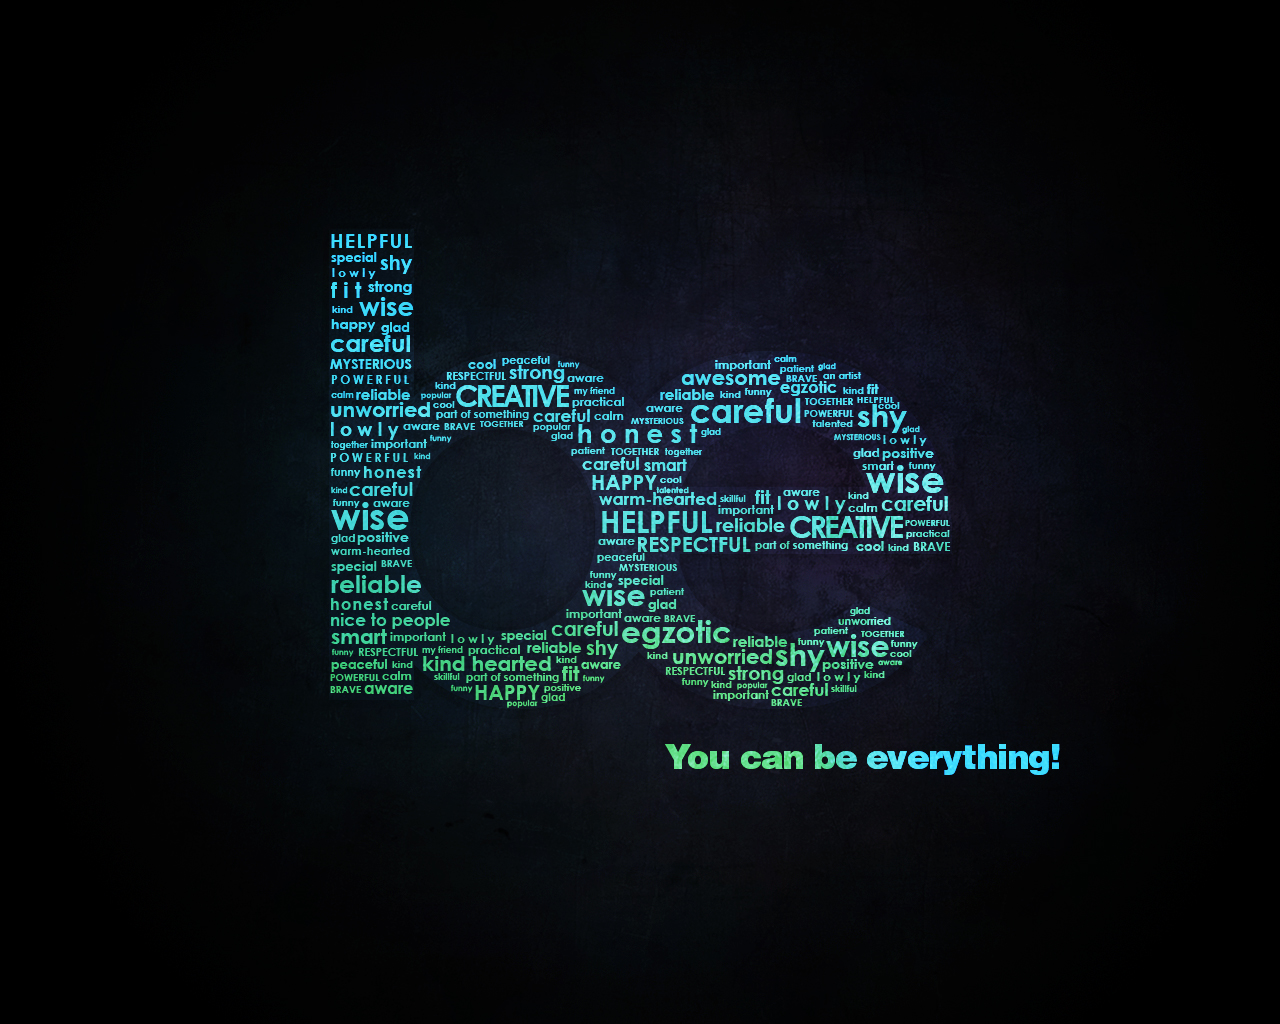 http://1.bp.blogspot.com/-MyuuylZquTE/UCK-Ms2Jx4I/AAAAAAAAAt0/1Sx3fmO4d_c/s1600/typography_inspirational_motivational_posters_motivation_desktop_1280x1024_hd-wallpaper-558620.jpg